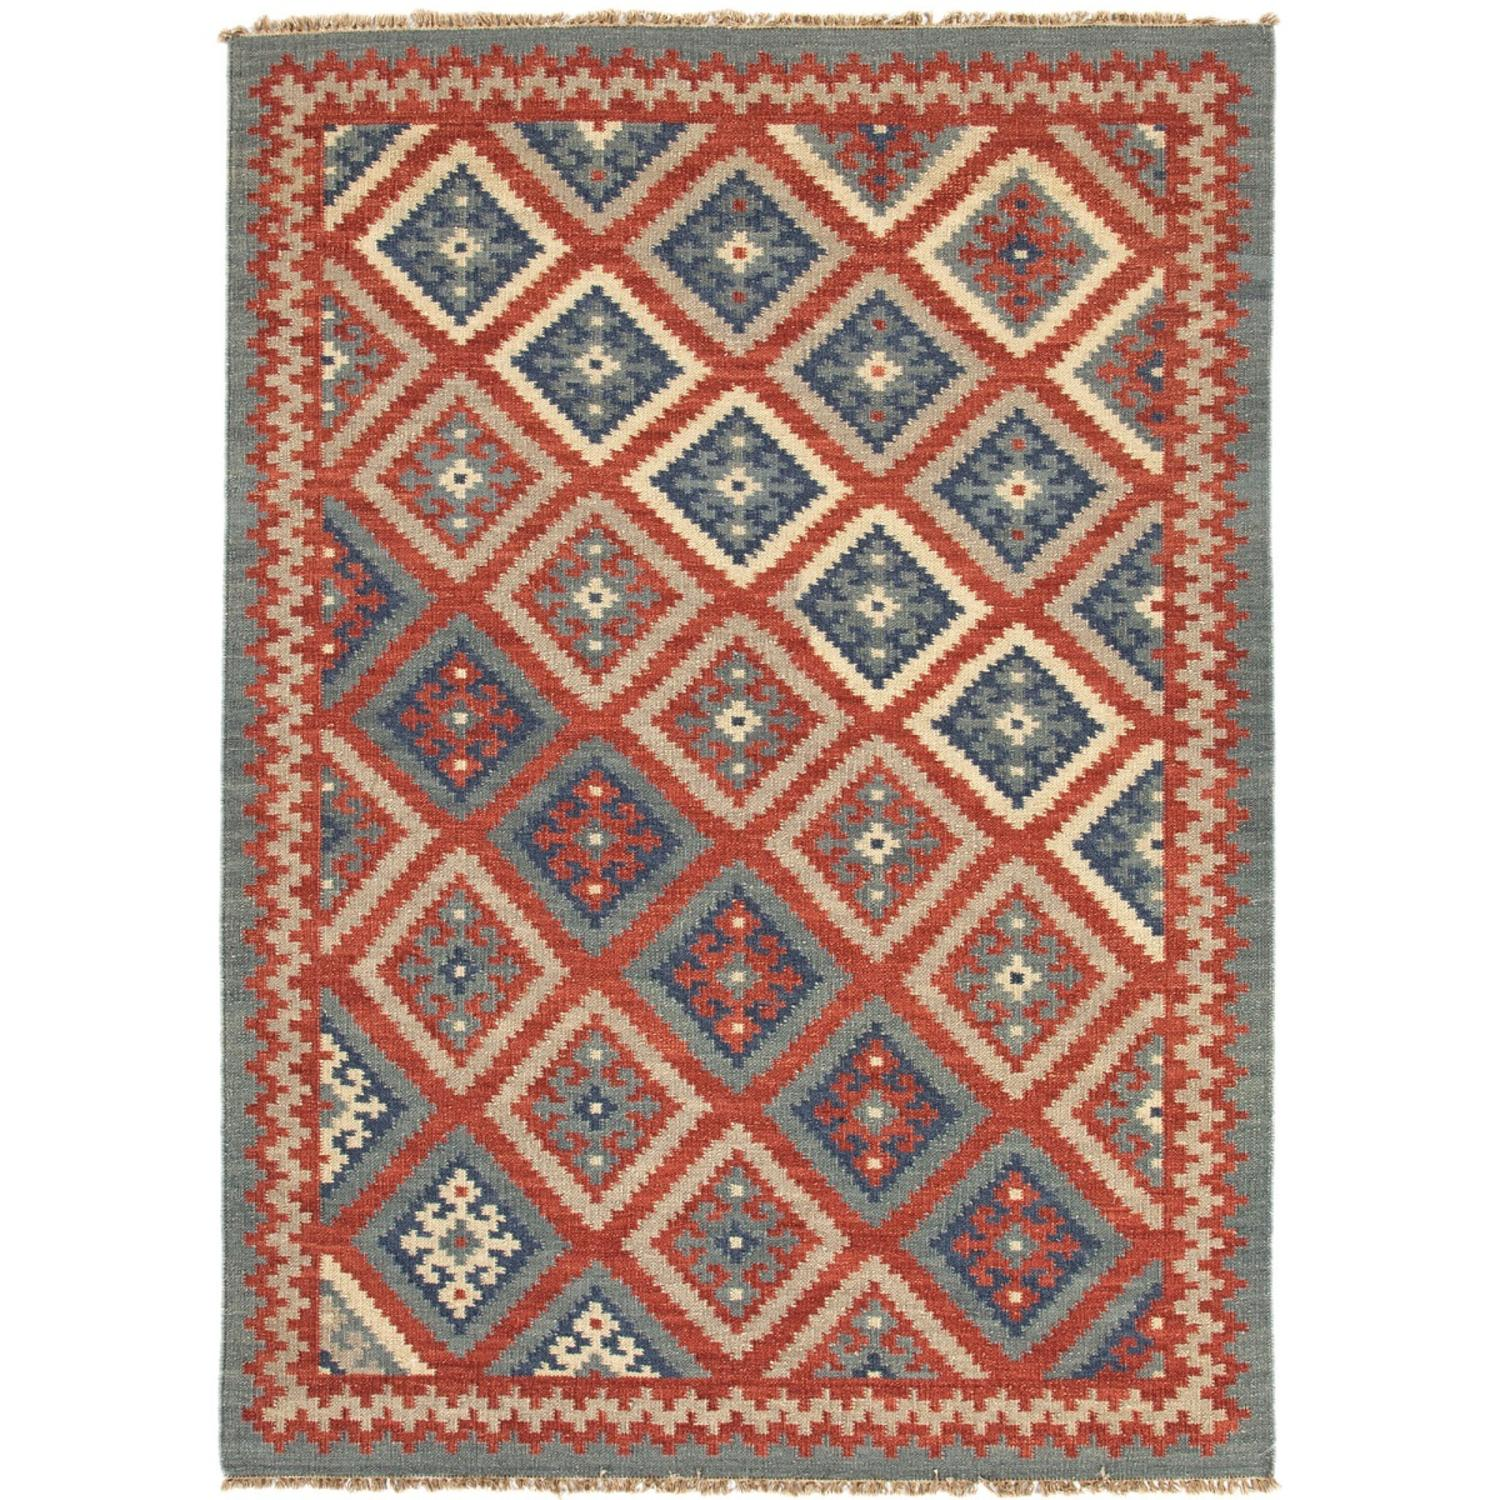 2' x 3' Red, Blue and Gray Flat Weave Ottoman Hand Woven Wool Area Throw Rug